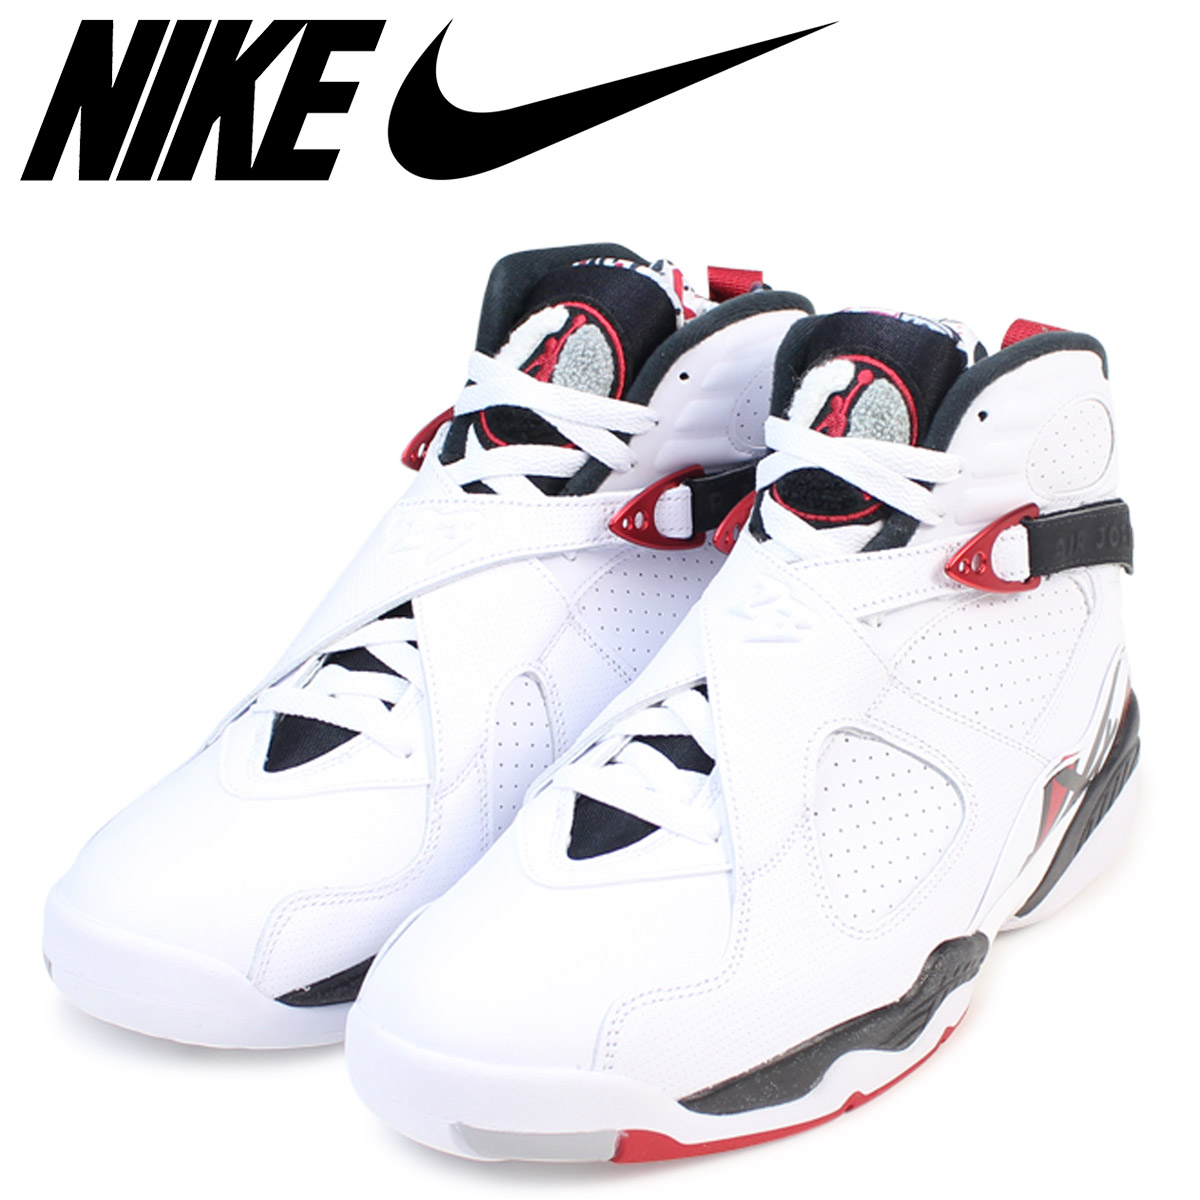 meilleur pas cher 40622 a15b2 NIKE Nike Air Jordan 8 nostalgic sneakers AIR JORDAN 8 RETRO ALTERNATE men  305,381-104 shoes white